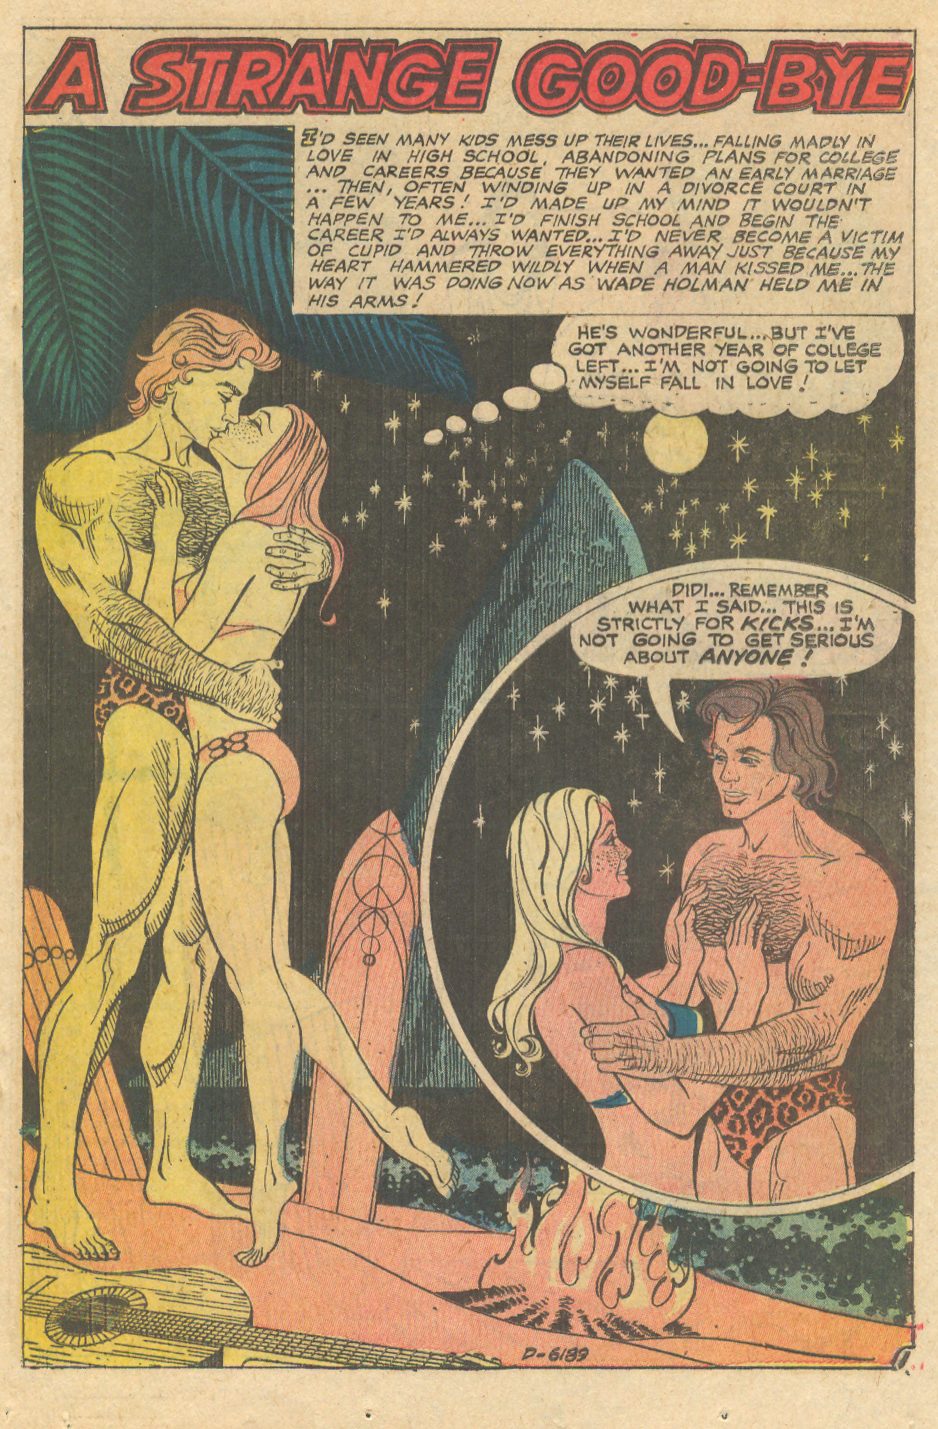 """Enrique Nieto in """"A Strange Good-Bye"""" from Love and Romance #20 (January 1975)."""